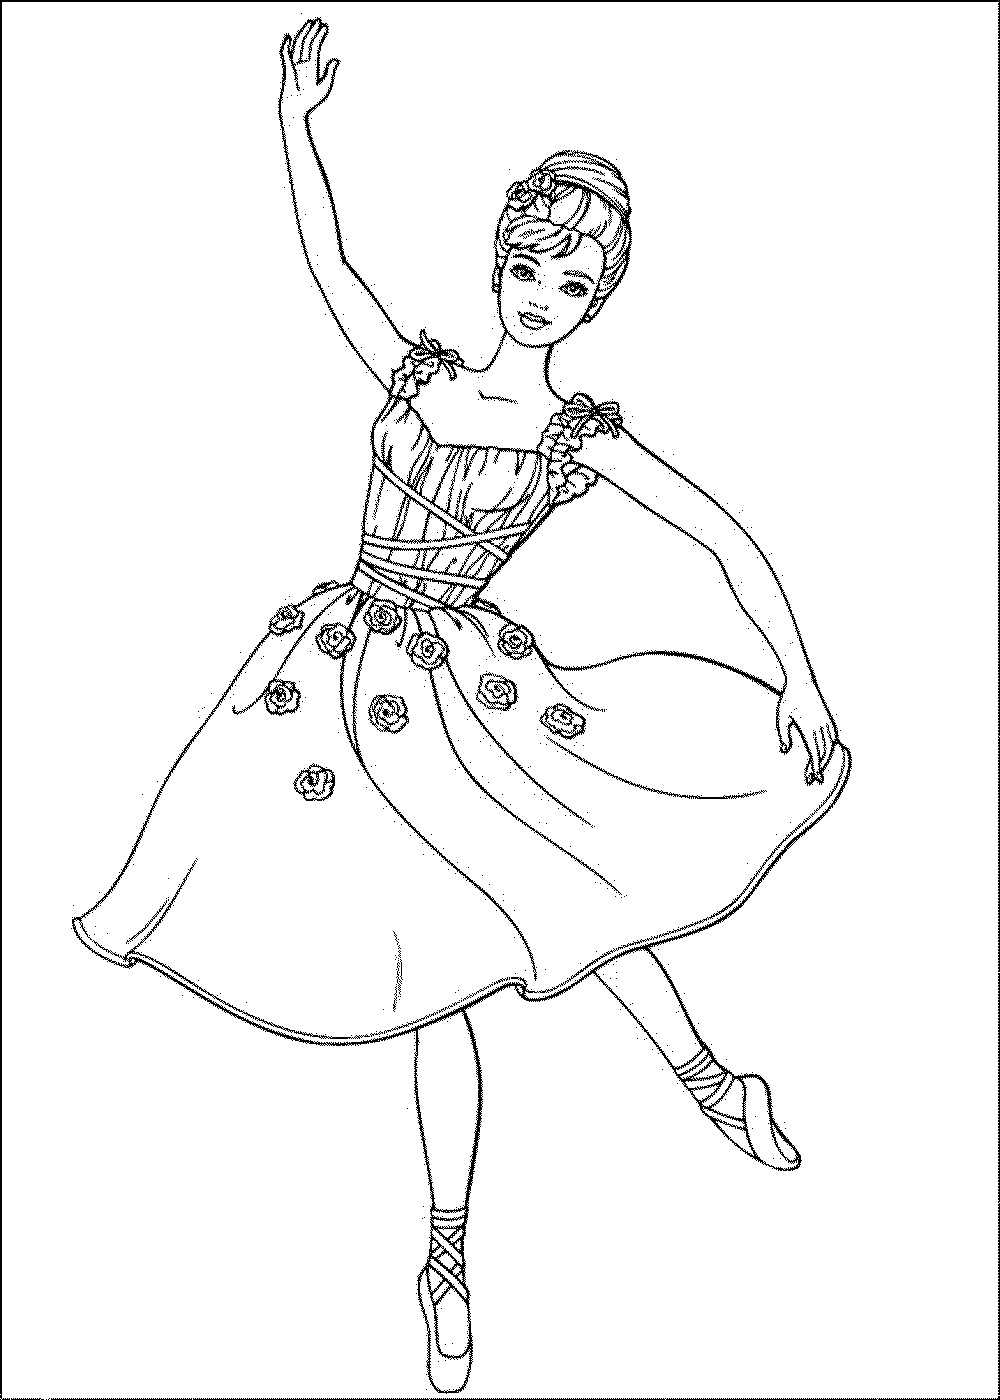 Barbie Coloring Pages App : Coloring pages barbie bestappsforkids